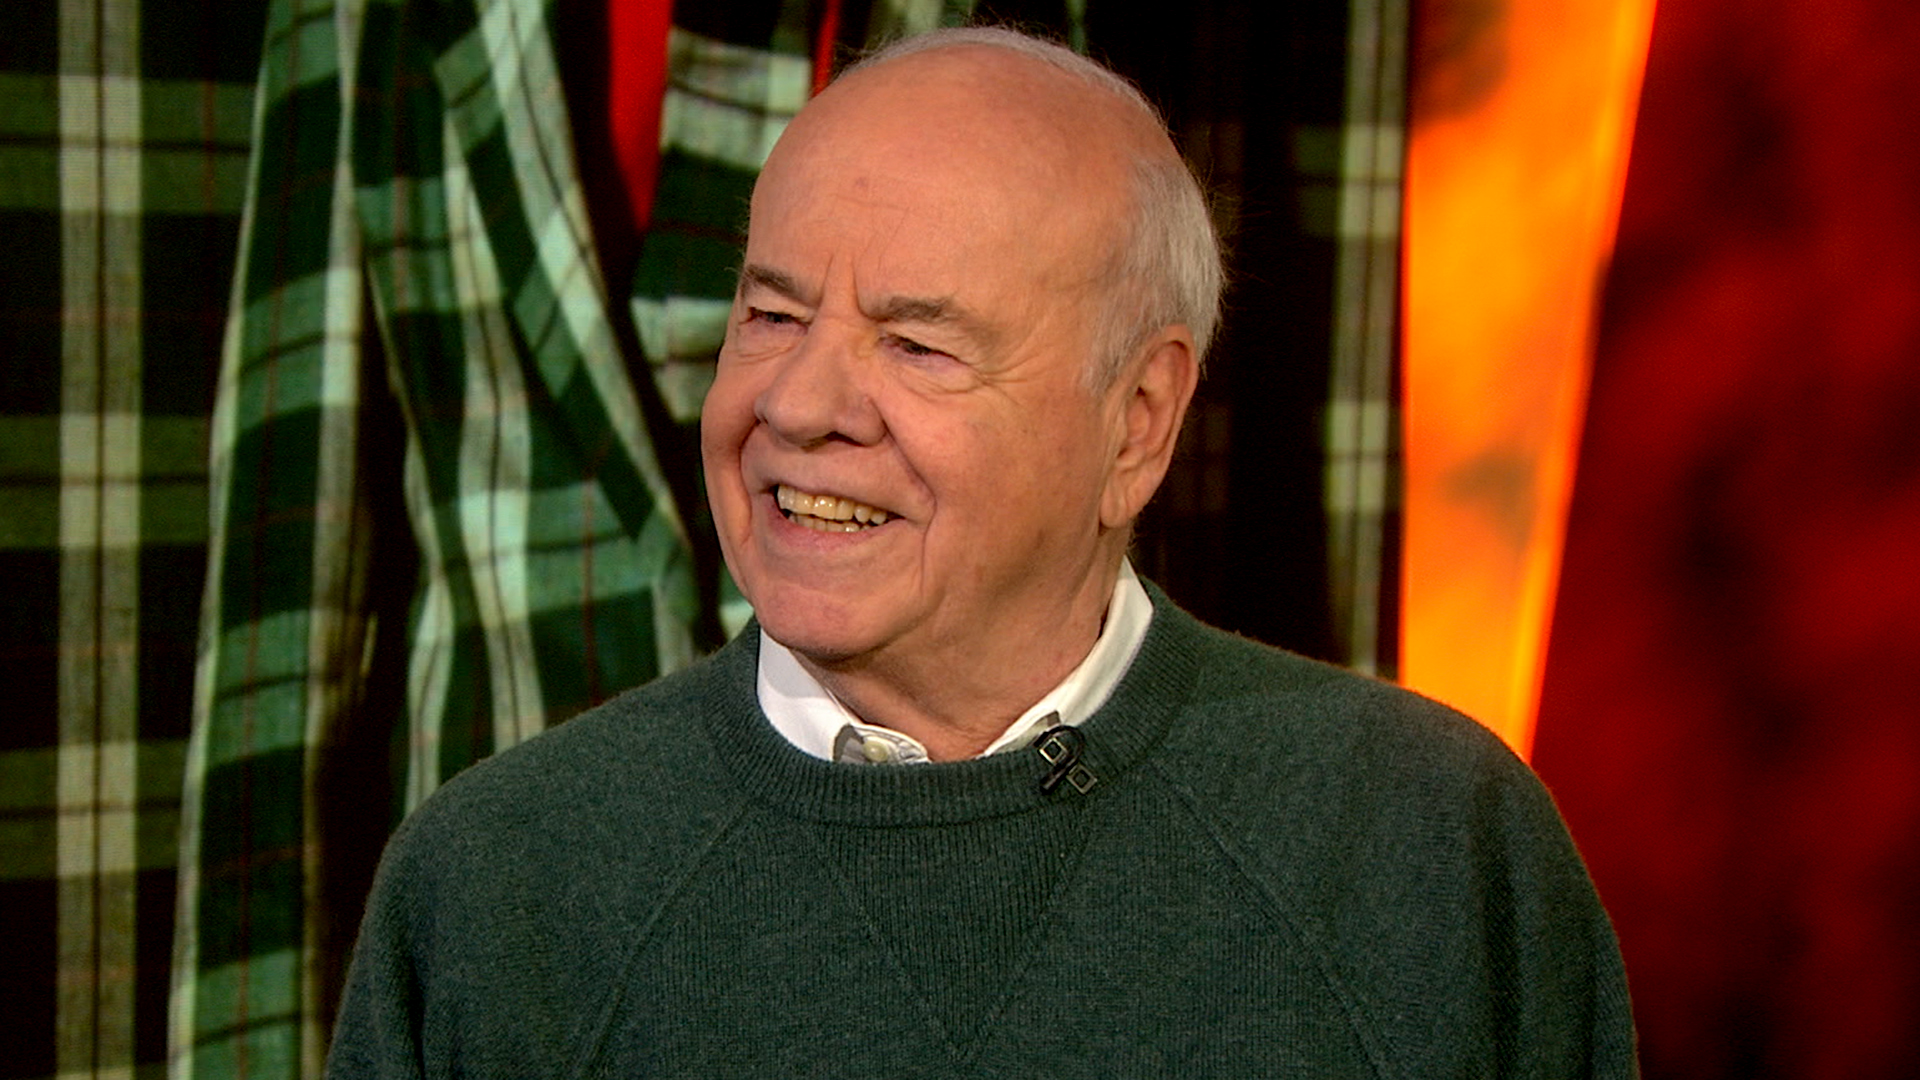 Tim Conway says dyslexia led him to a life in comedy ...